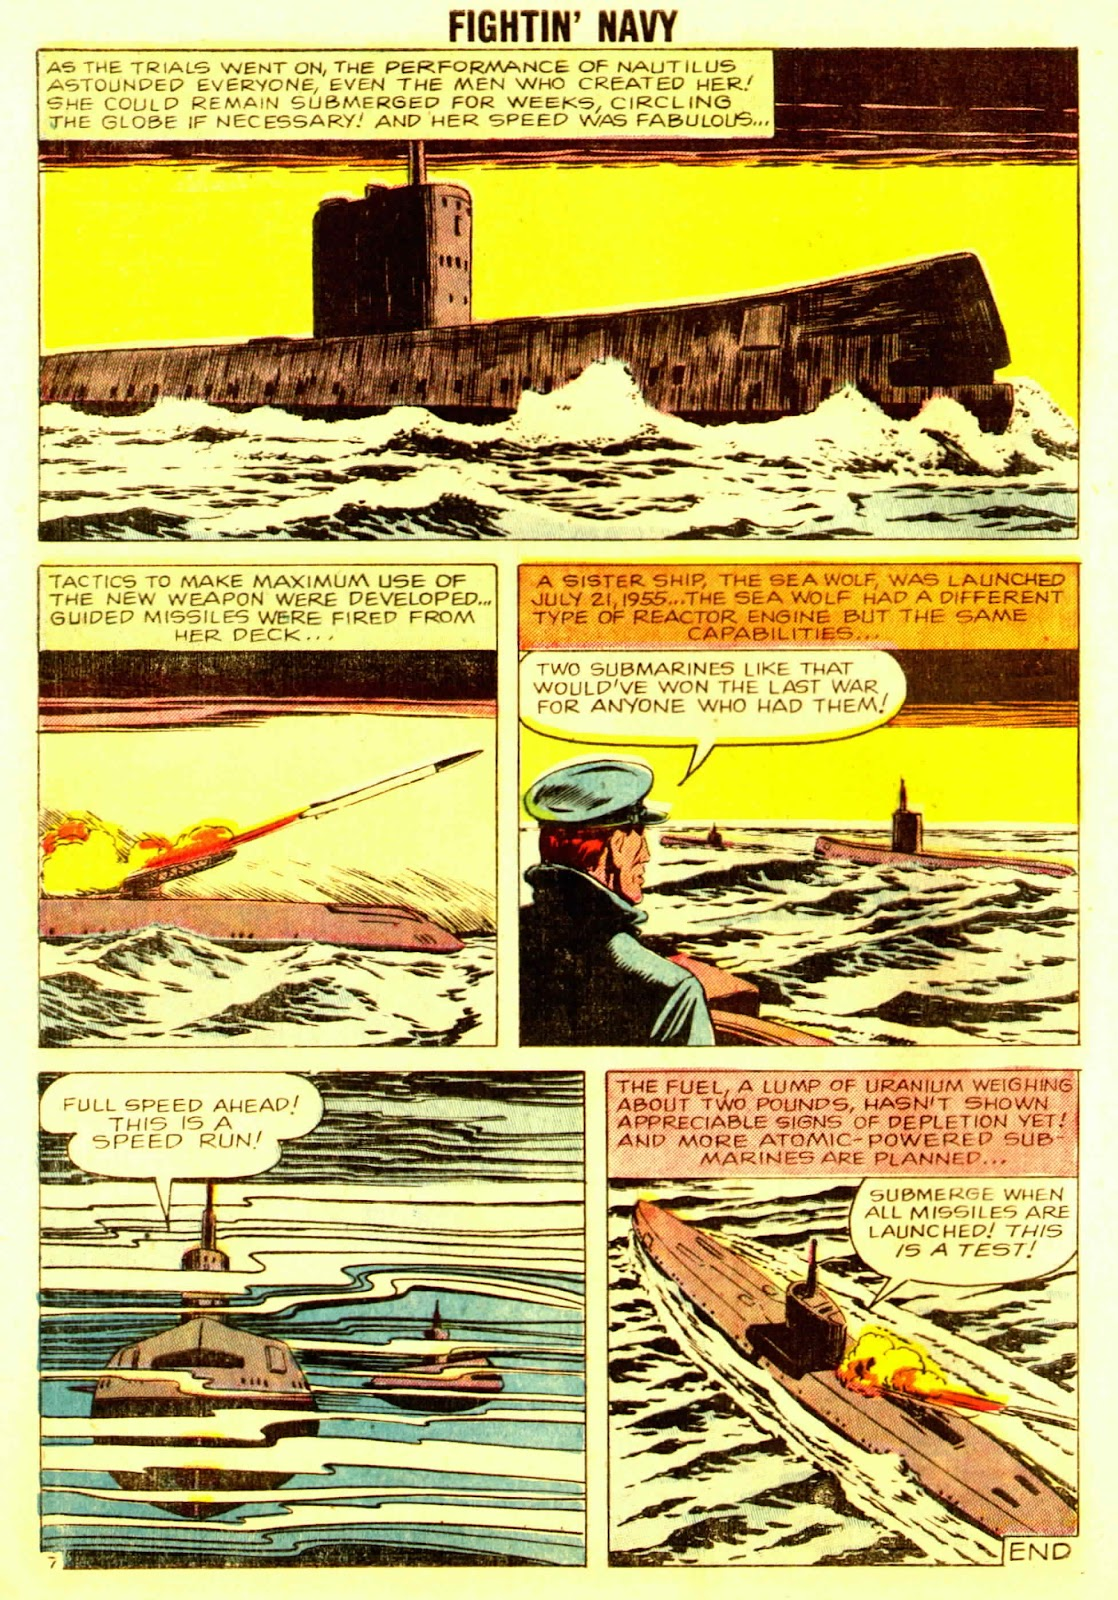 Read online Fightin' Navy comic -  Issue #83 - 58